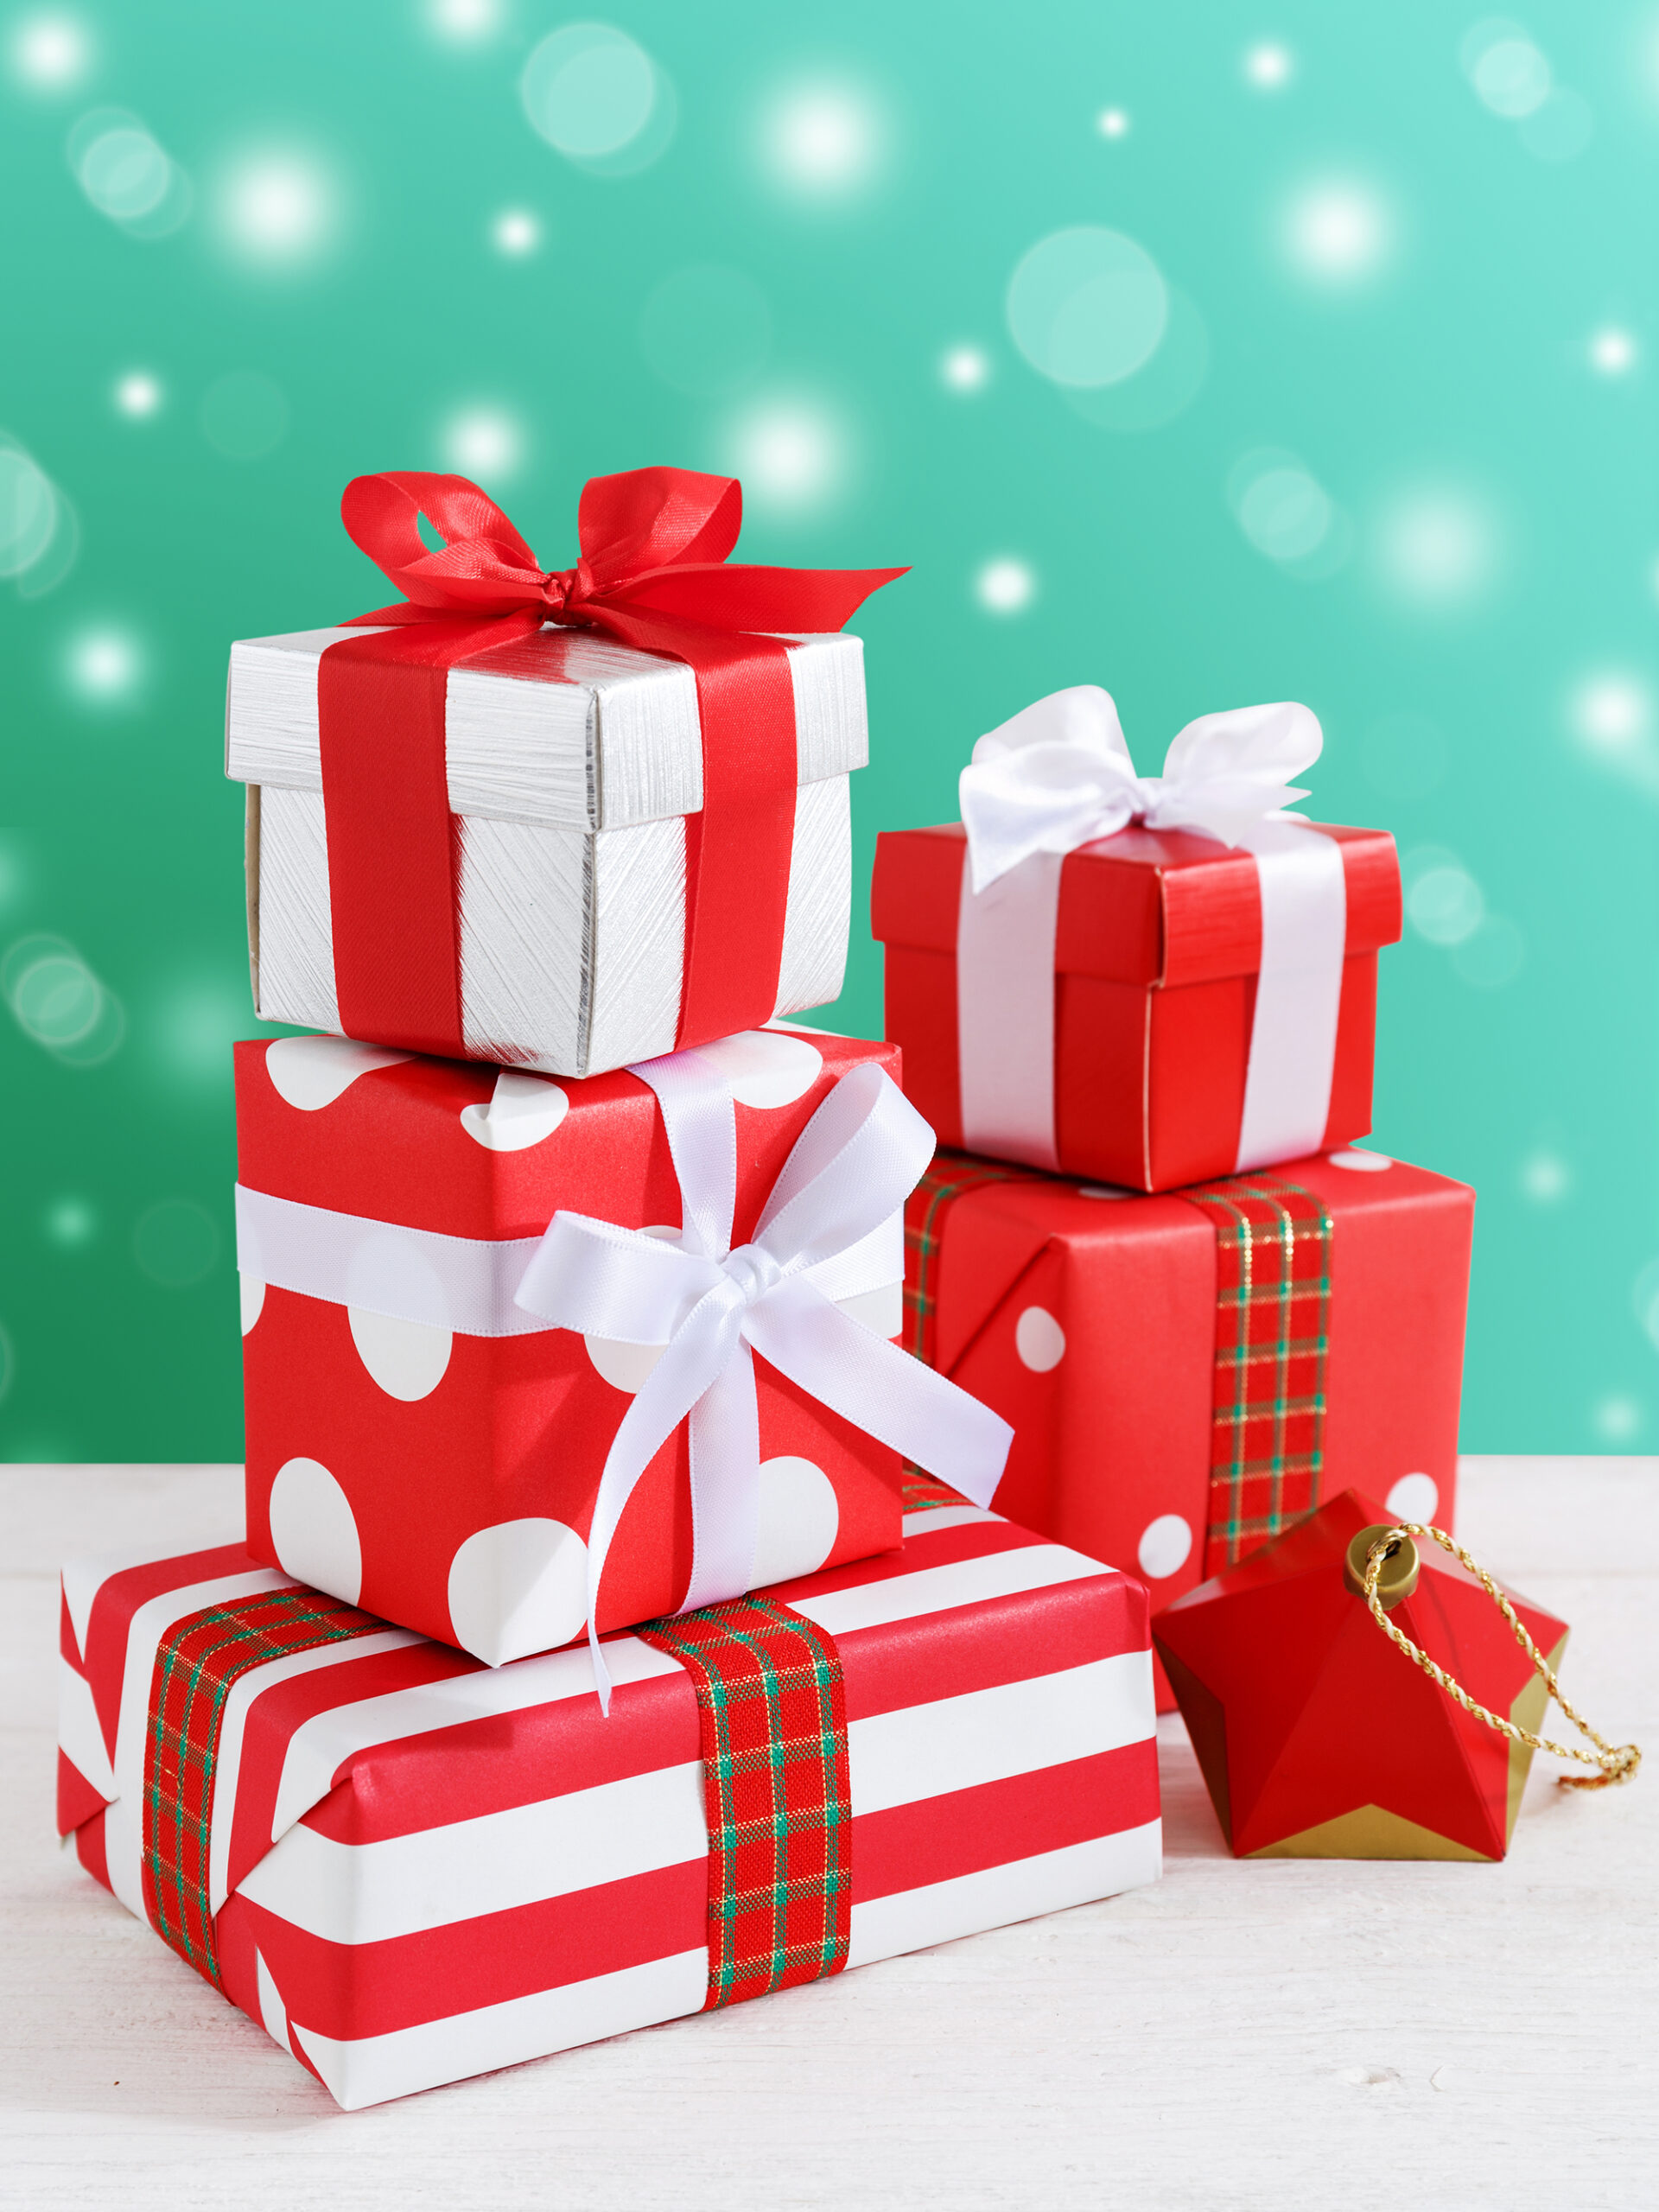 Gift and Present Service